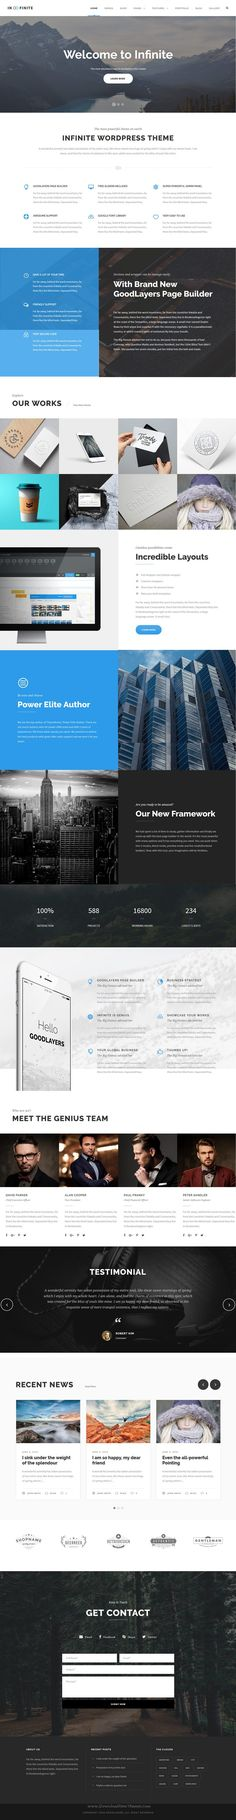 Infinite is well designed responsive #WordPress theme for multipurpose amazing #website. #business Download Now!